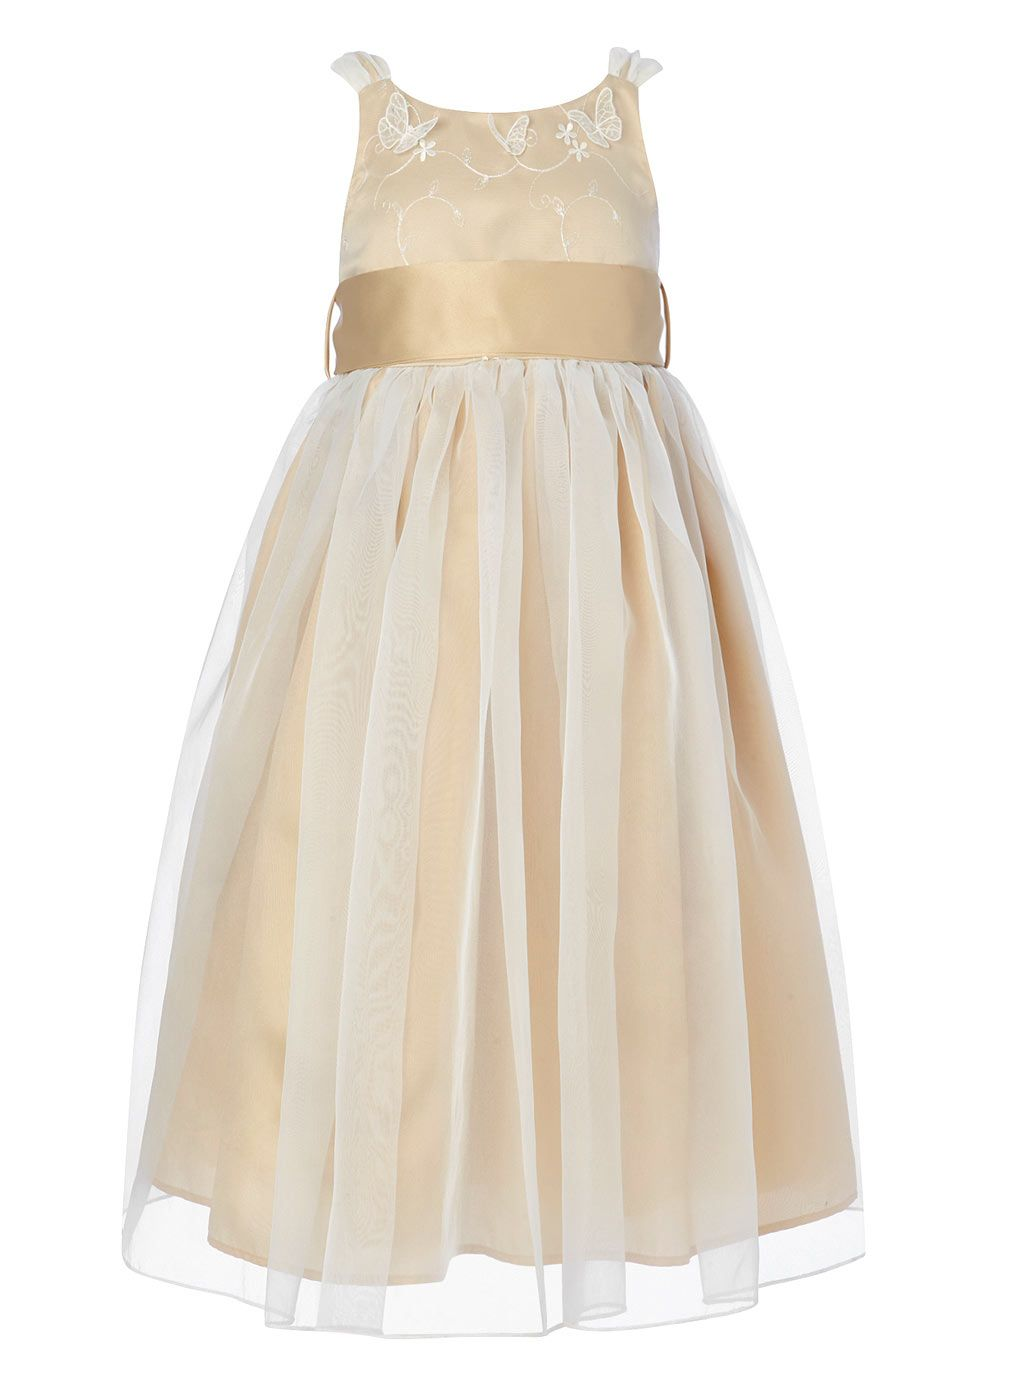 Isla Champagne Bridesmaid Dress - child dresses - young bridesmaids ...